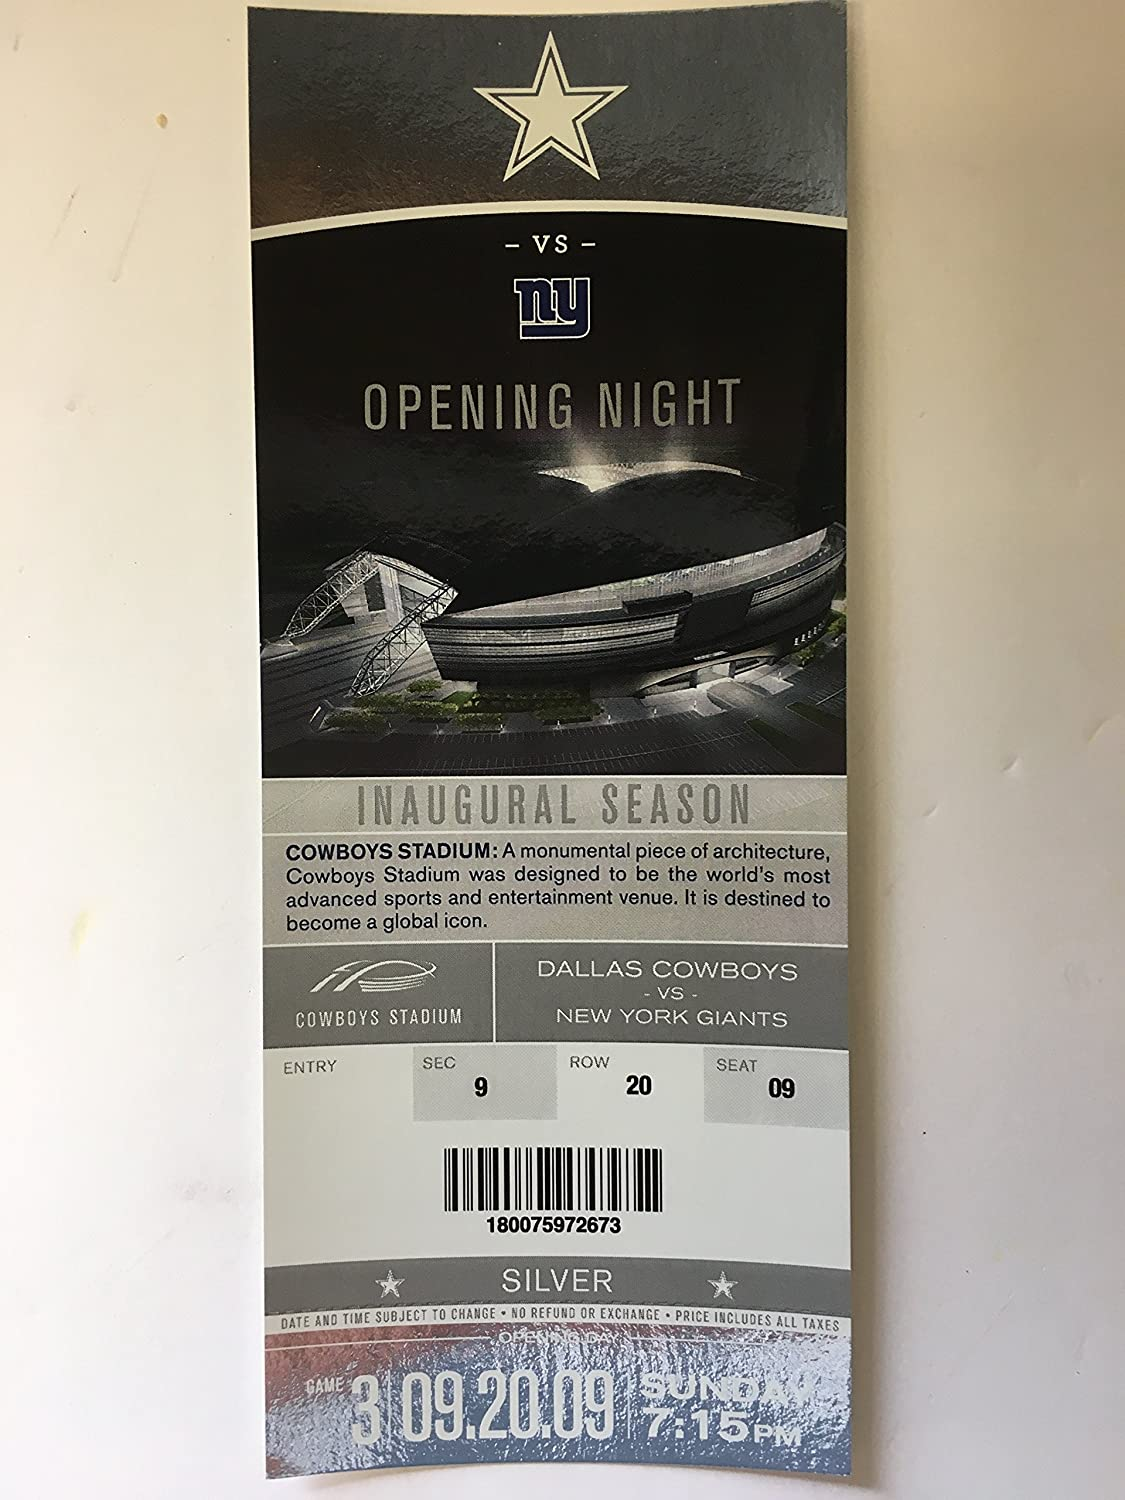 Cowboys Stadium Opening Night Inaugural Season Commemorative Holographic Ticket Stub! Dallas Cowboys vs New York Giants 9/20/09